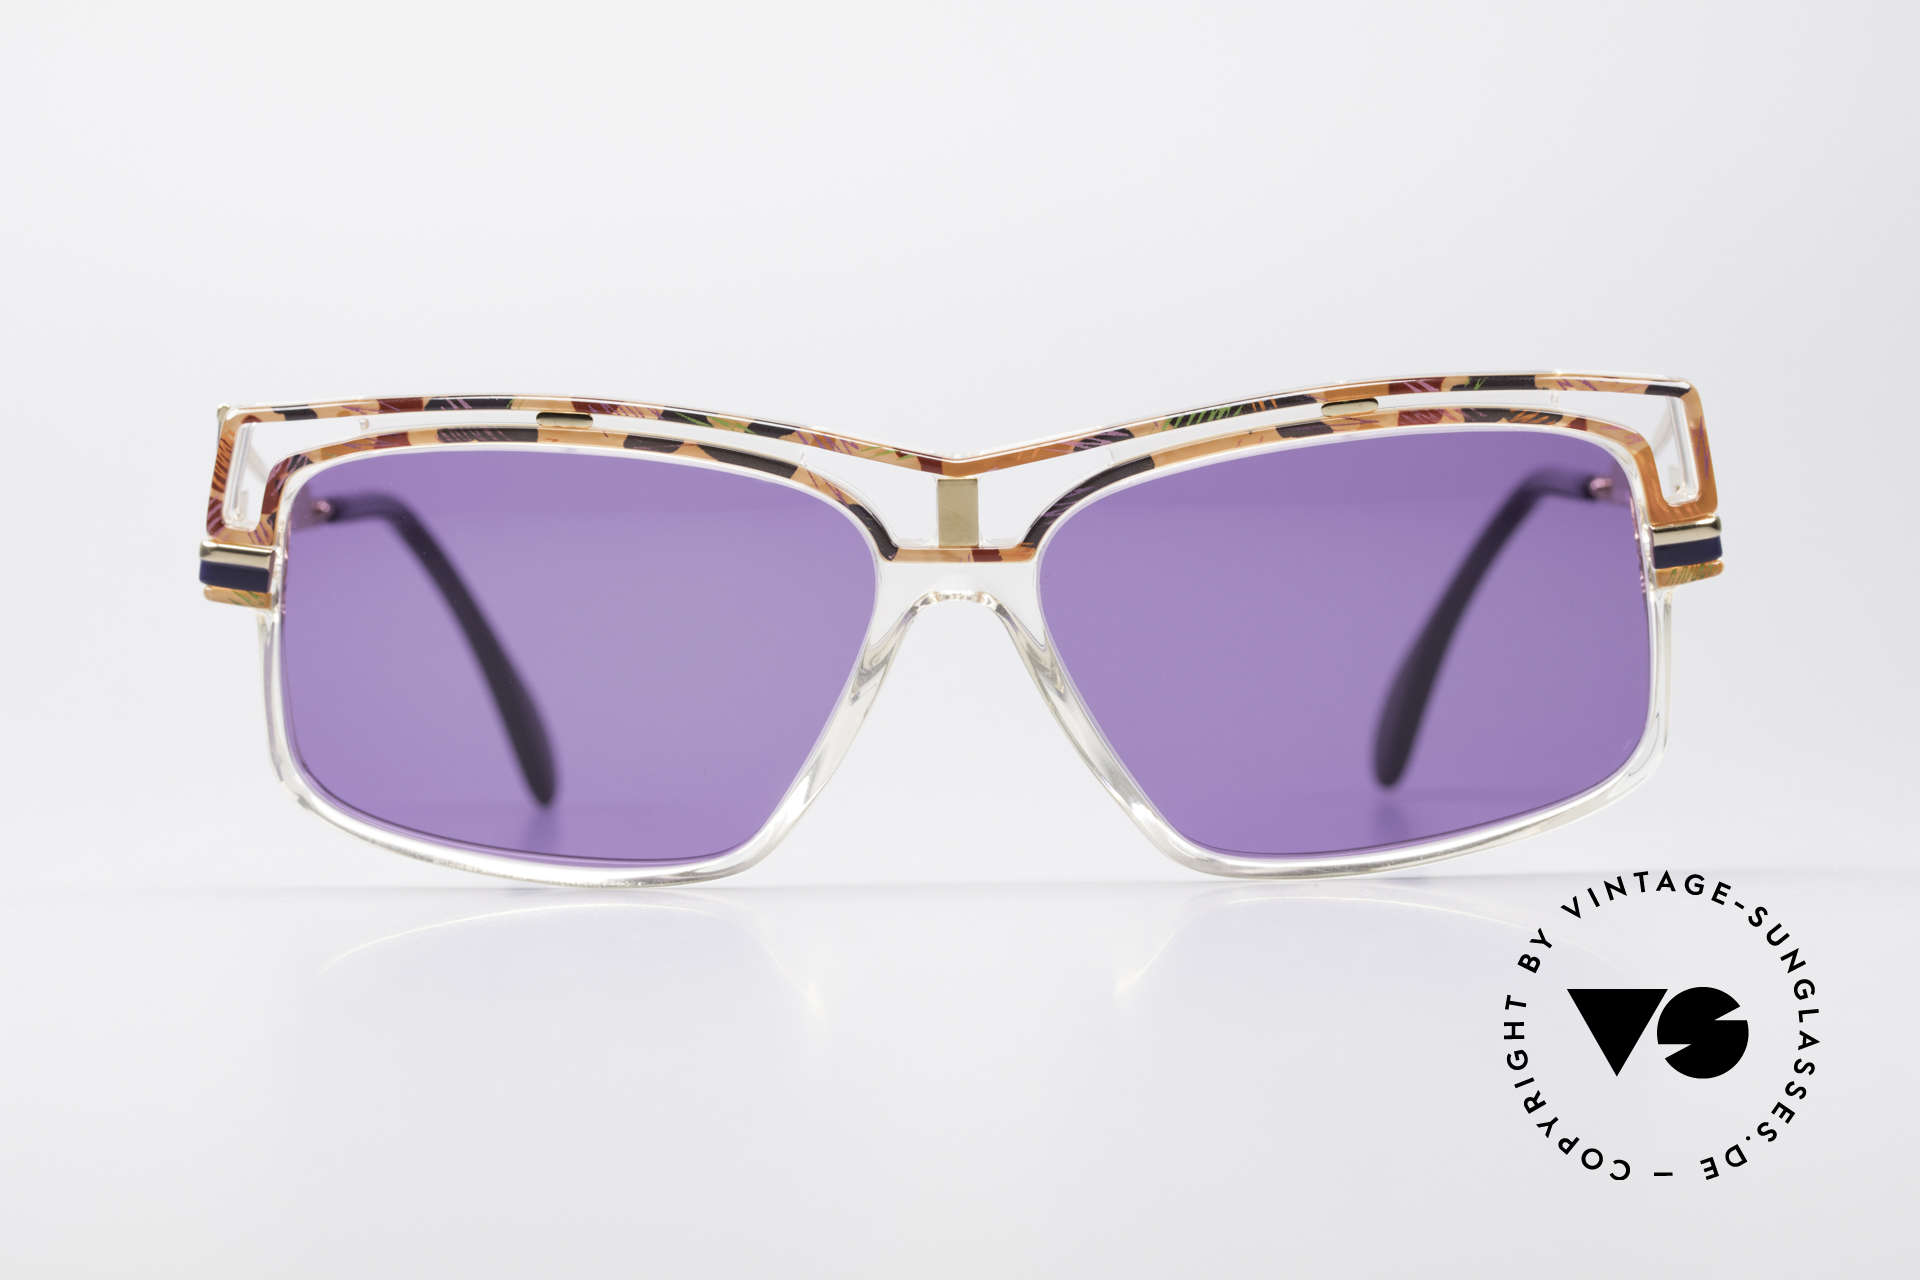 Cazal 365 Old School Hip Hop Cazal 90's, interesting combination of colors, form & materials, Made for Men and Women